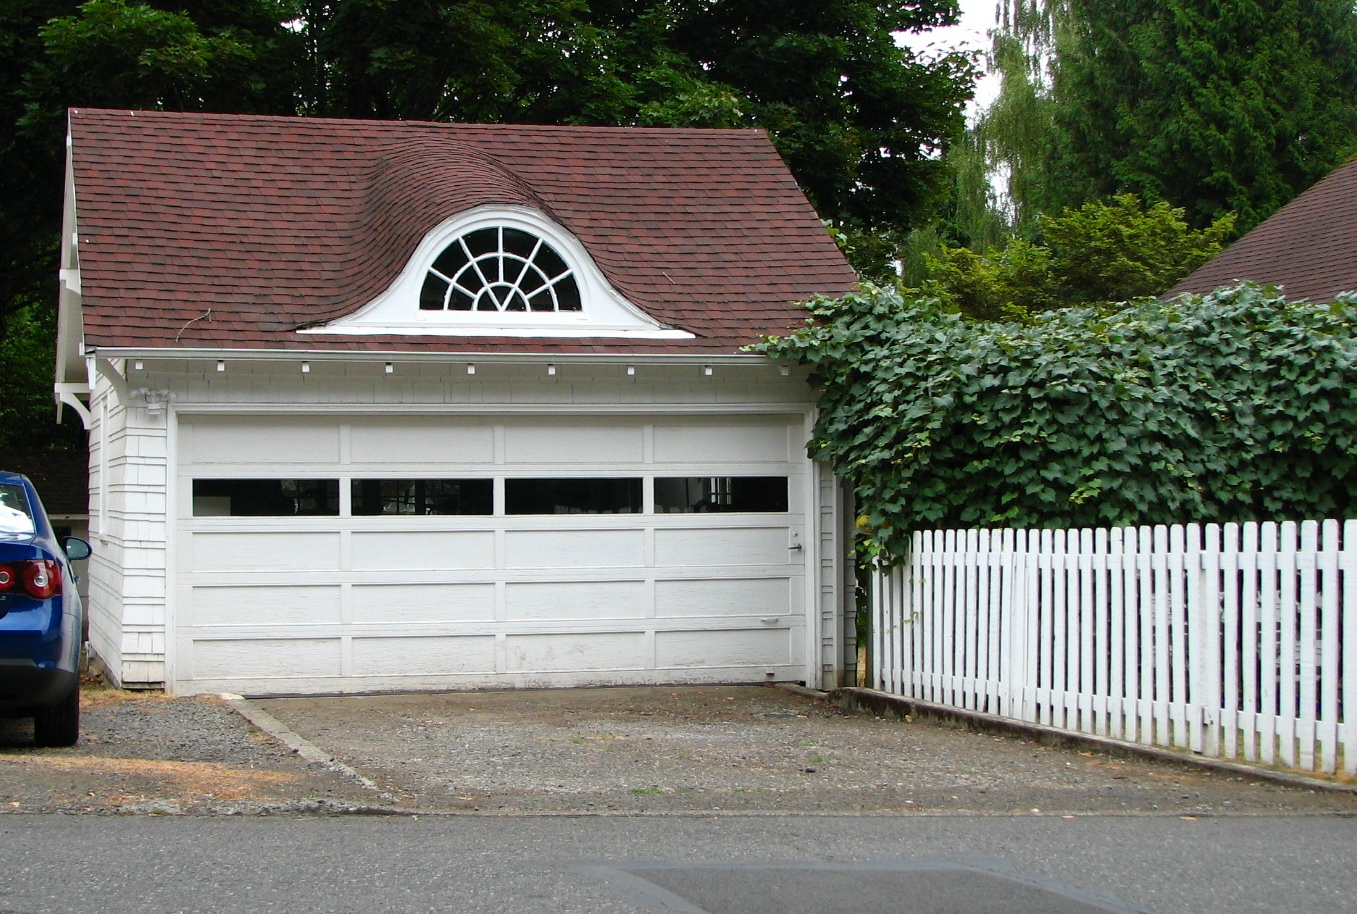 Learn how to keep your garage organised with our top tips! Source: http://www.cdcgaragedoors.co.uk/assets/Hughes_House_garage_-_Gresham_Oregon.jpg